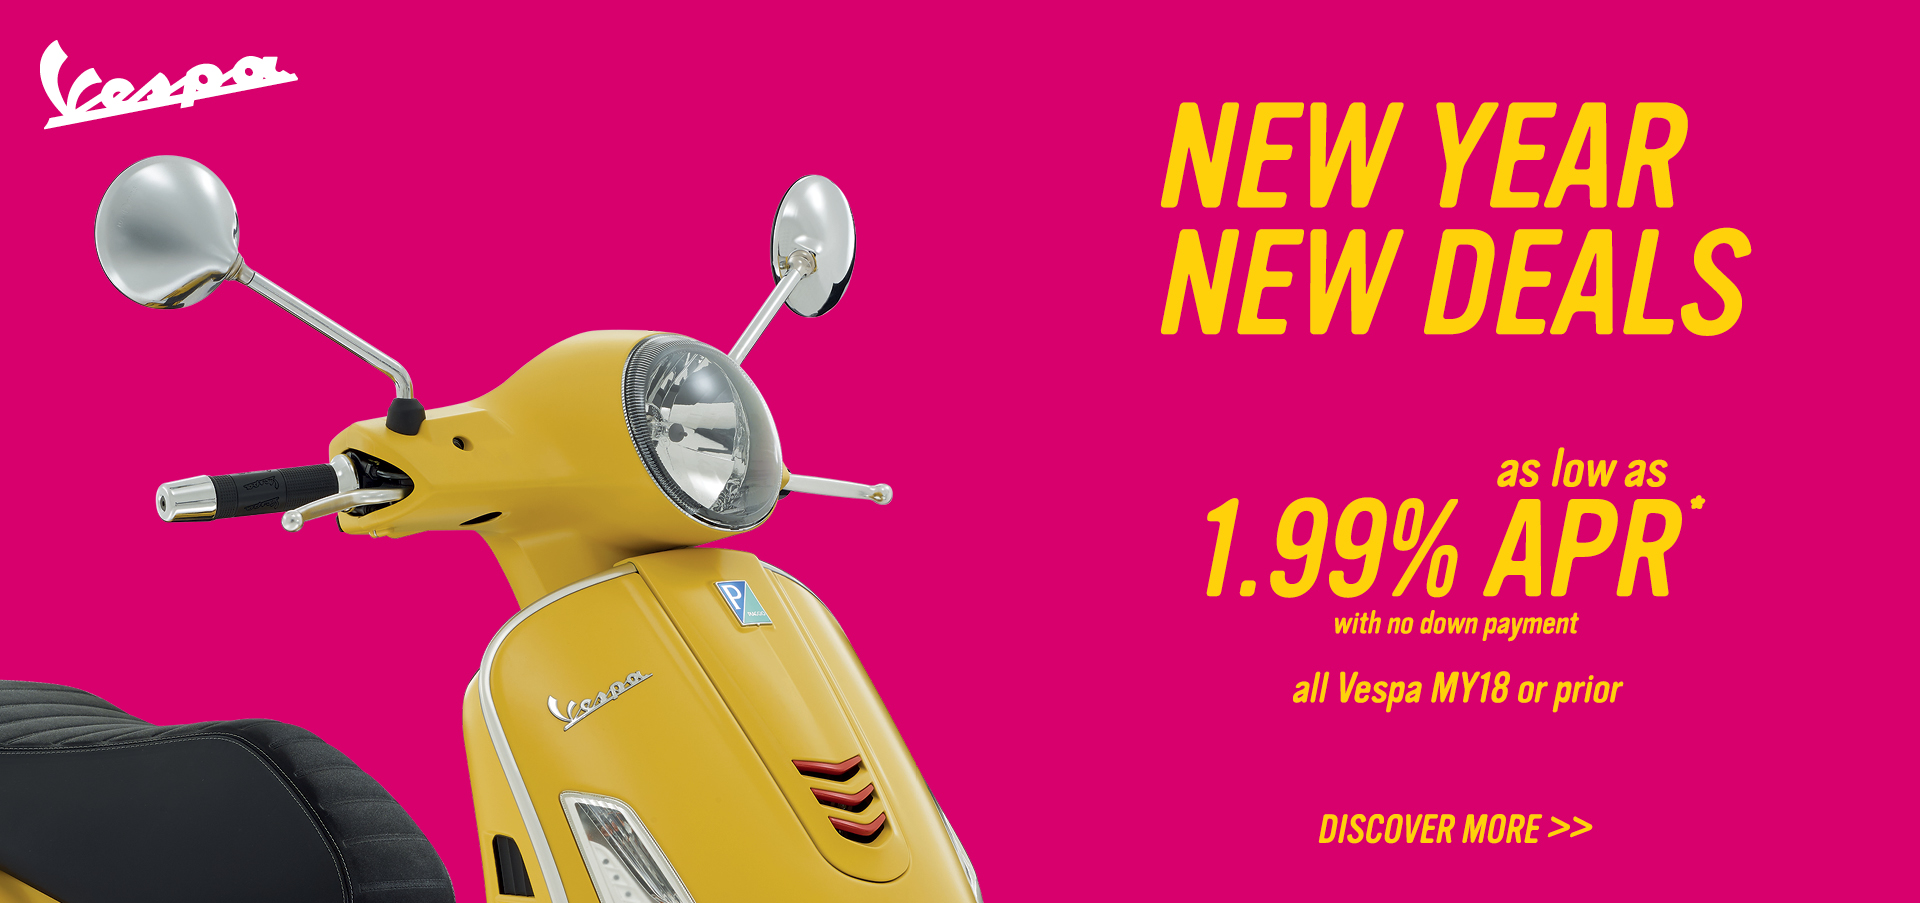 Q1_Vespa_1920x903_USA-dealer.jpg